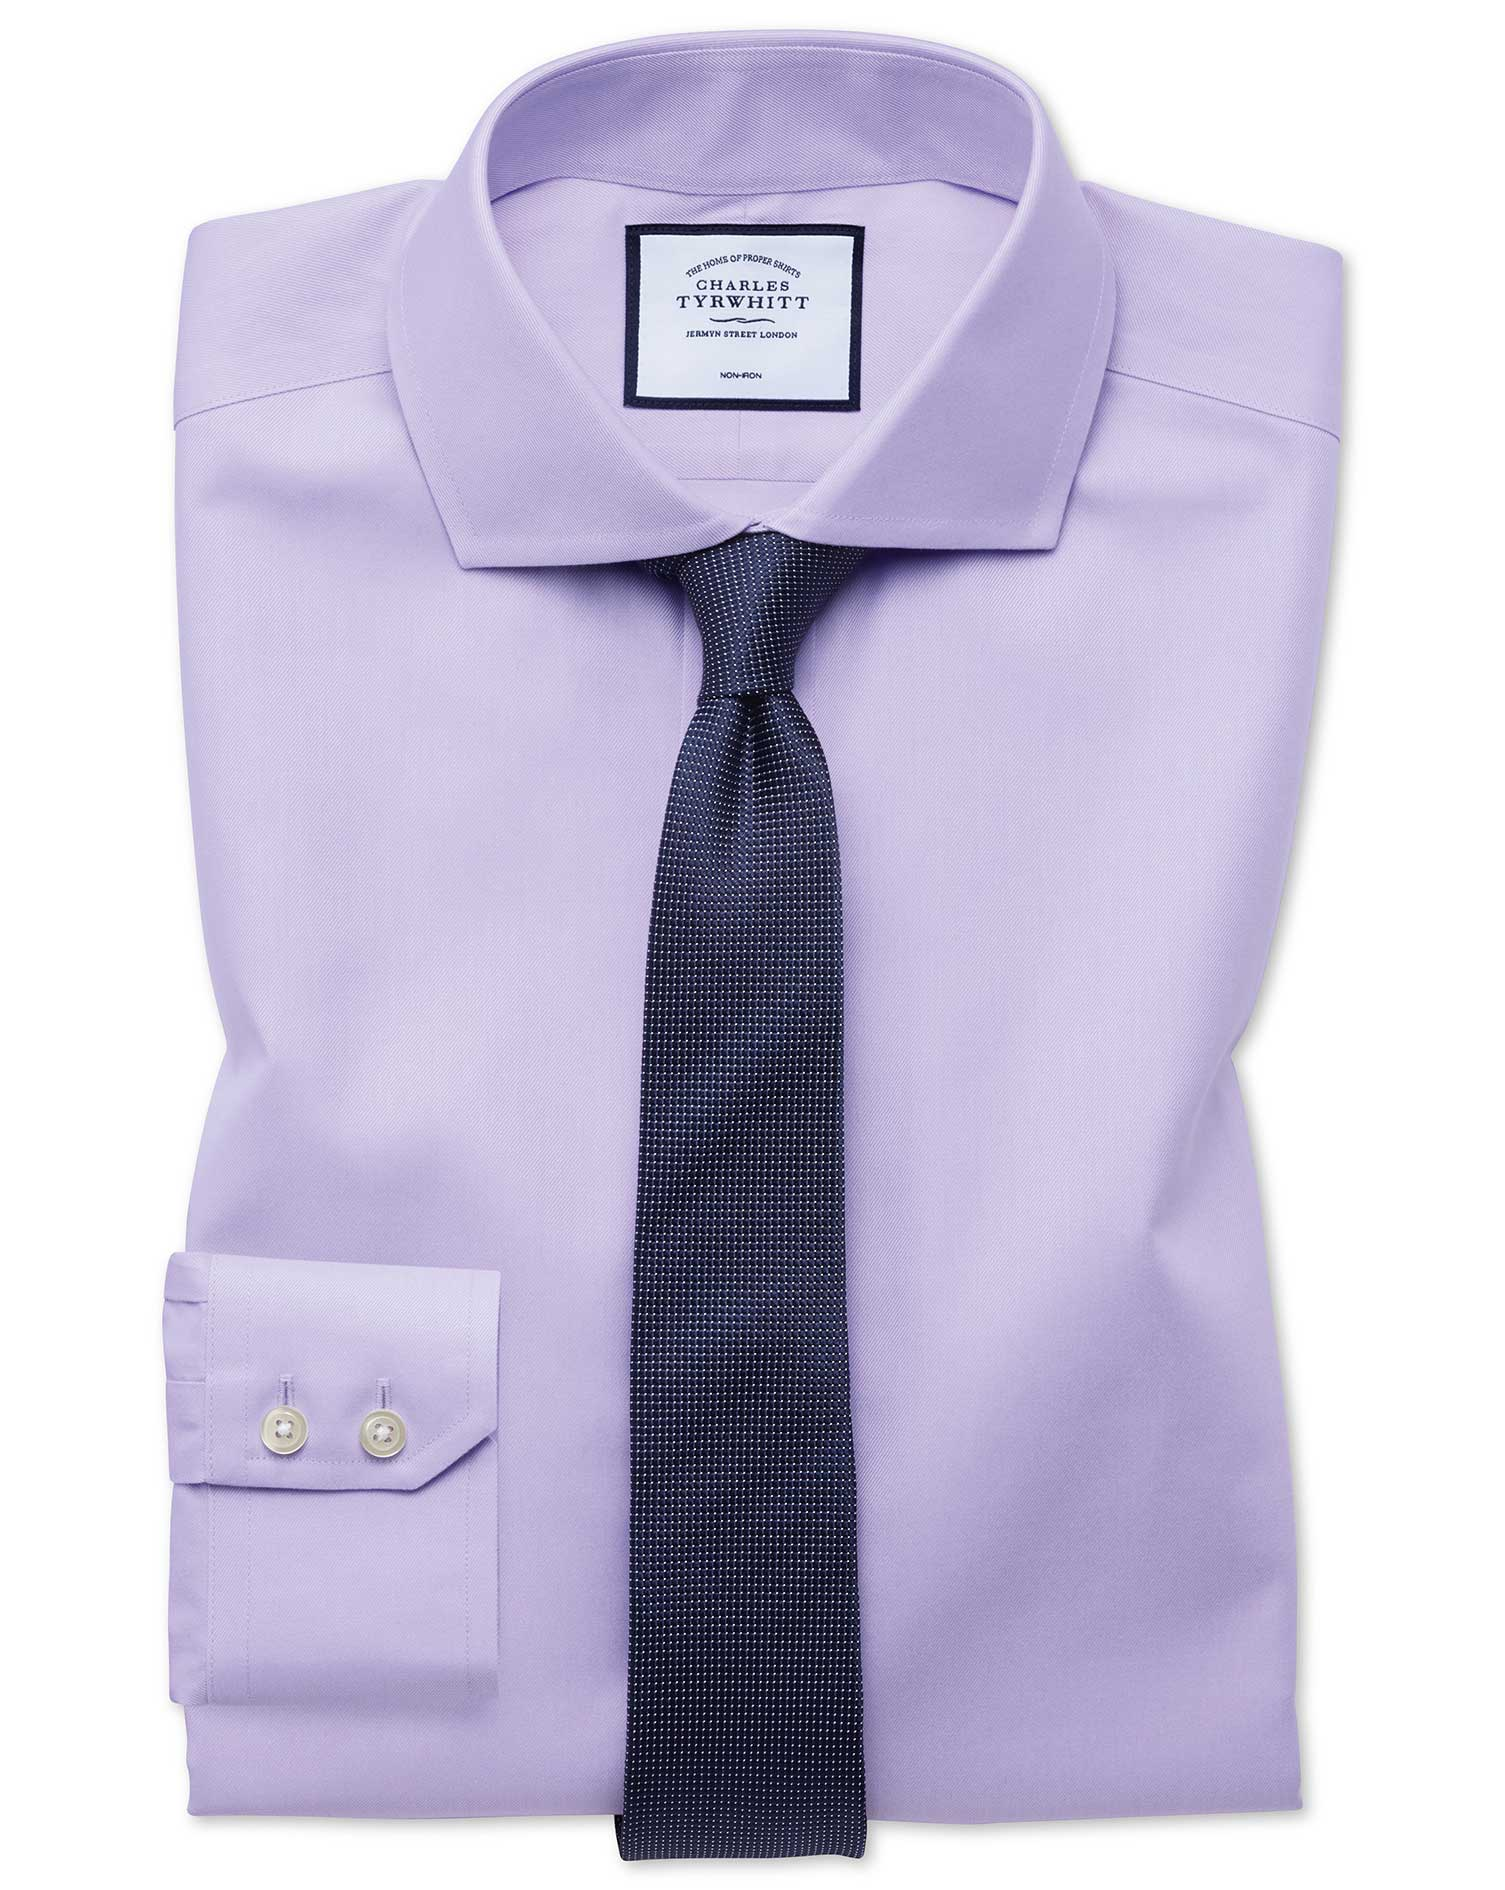 Extra Slim Fit Non-Iron Twill Lilac Cotton Formal Shirt Single Cuff Size 16/33 by Charles Tyrwhitt